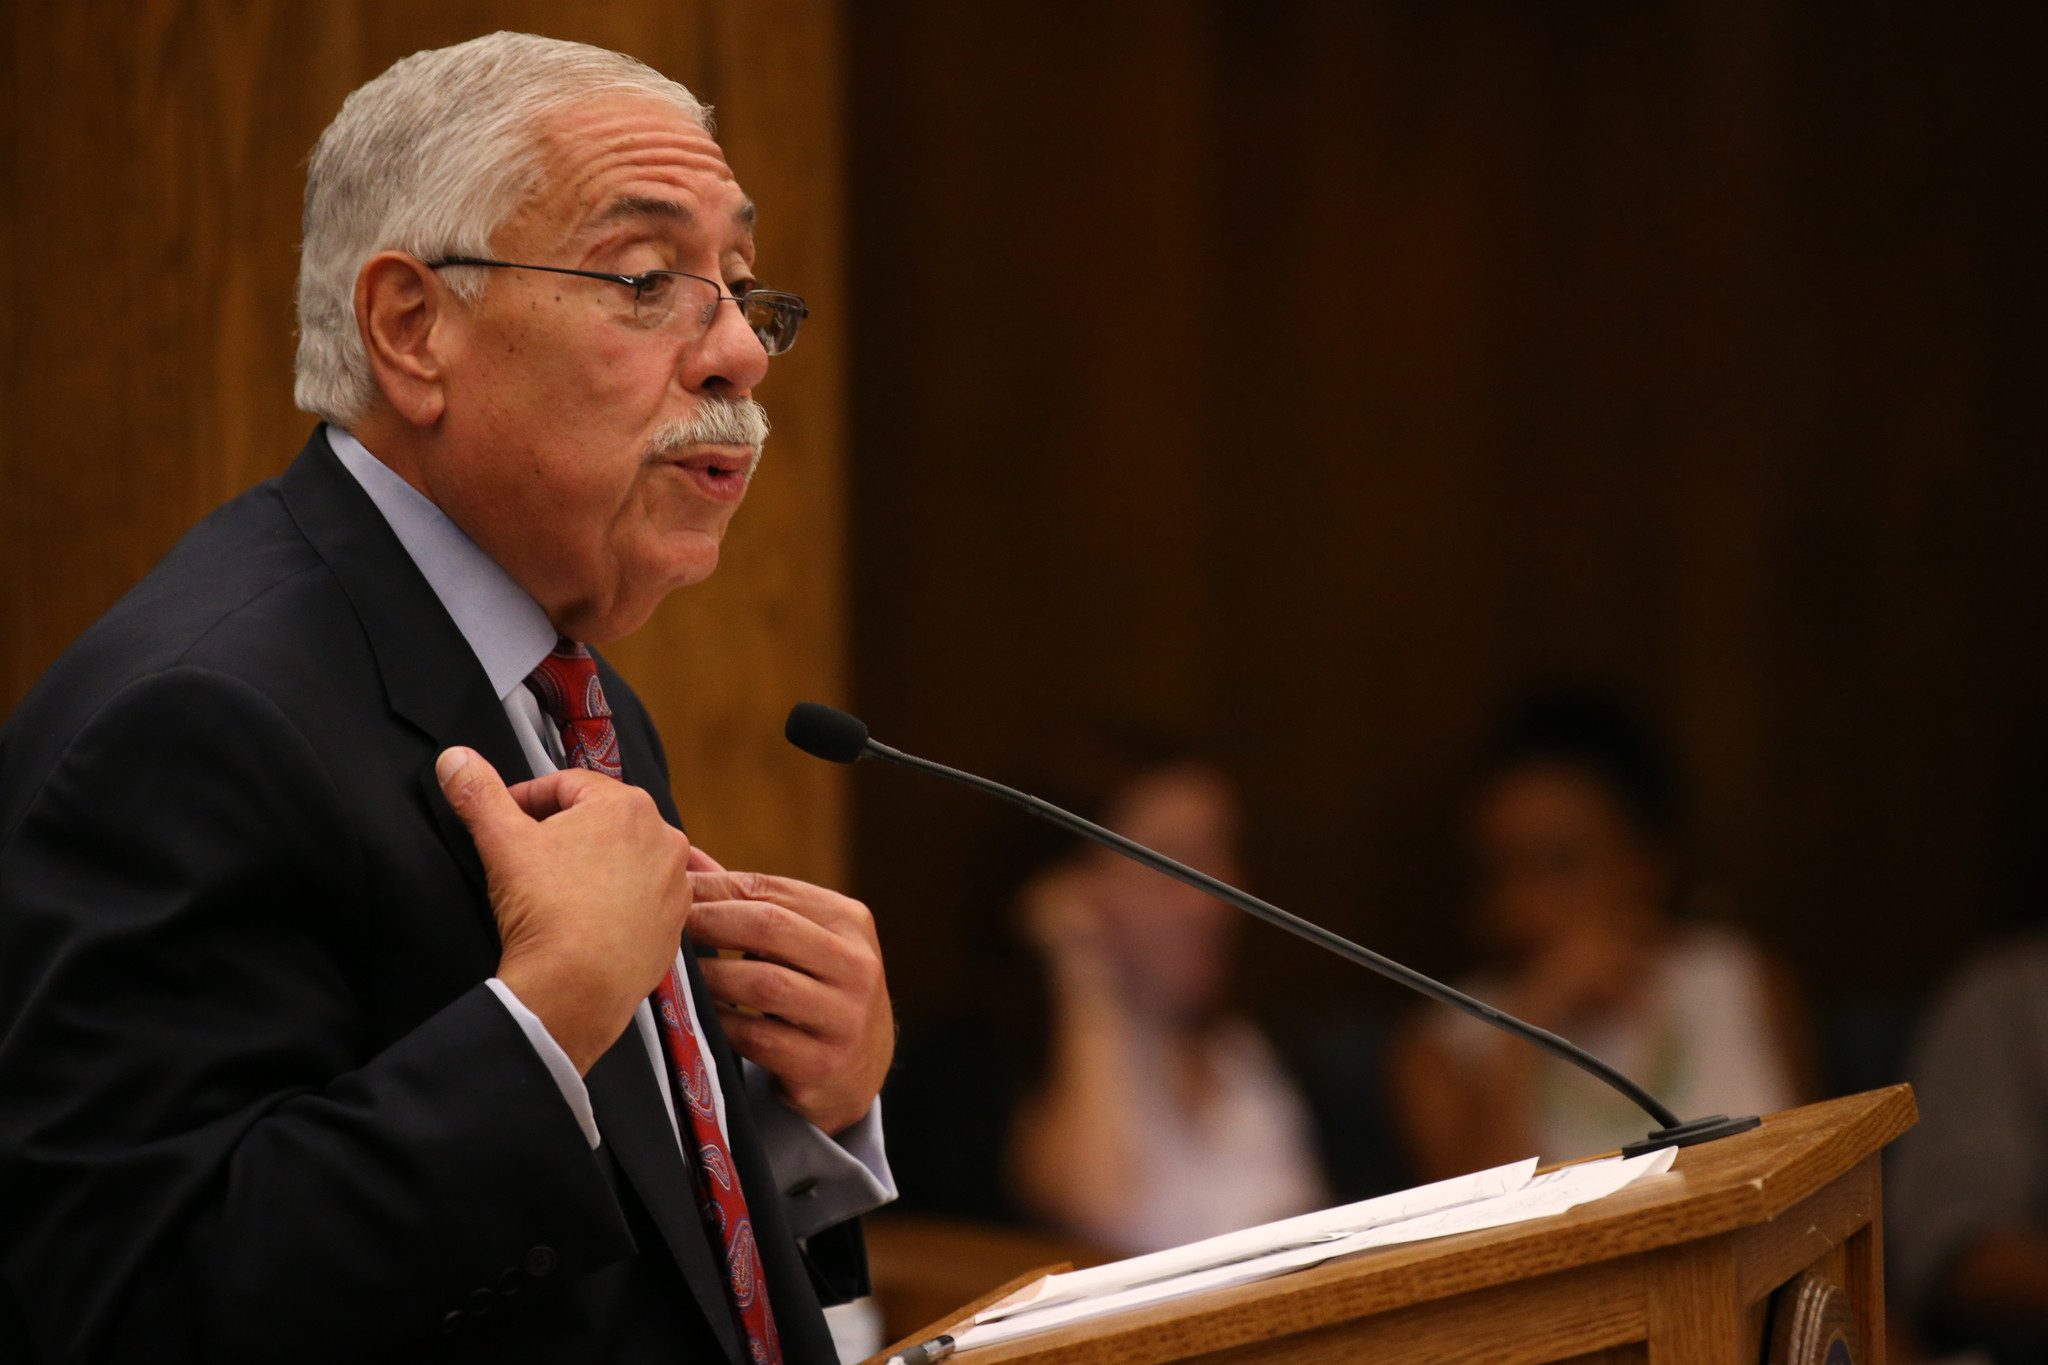 Lawsuit targets Berrios over biased residential assessments in Cook County